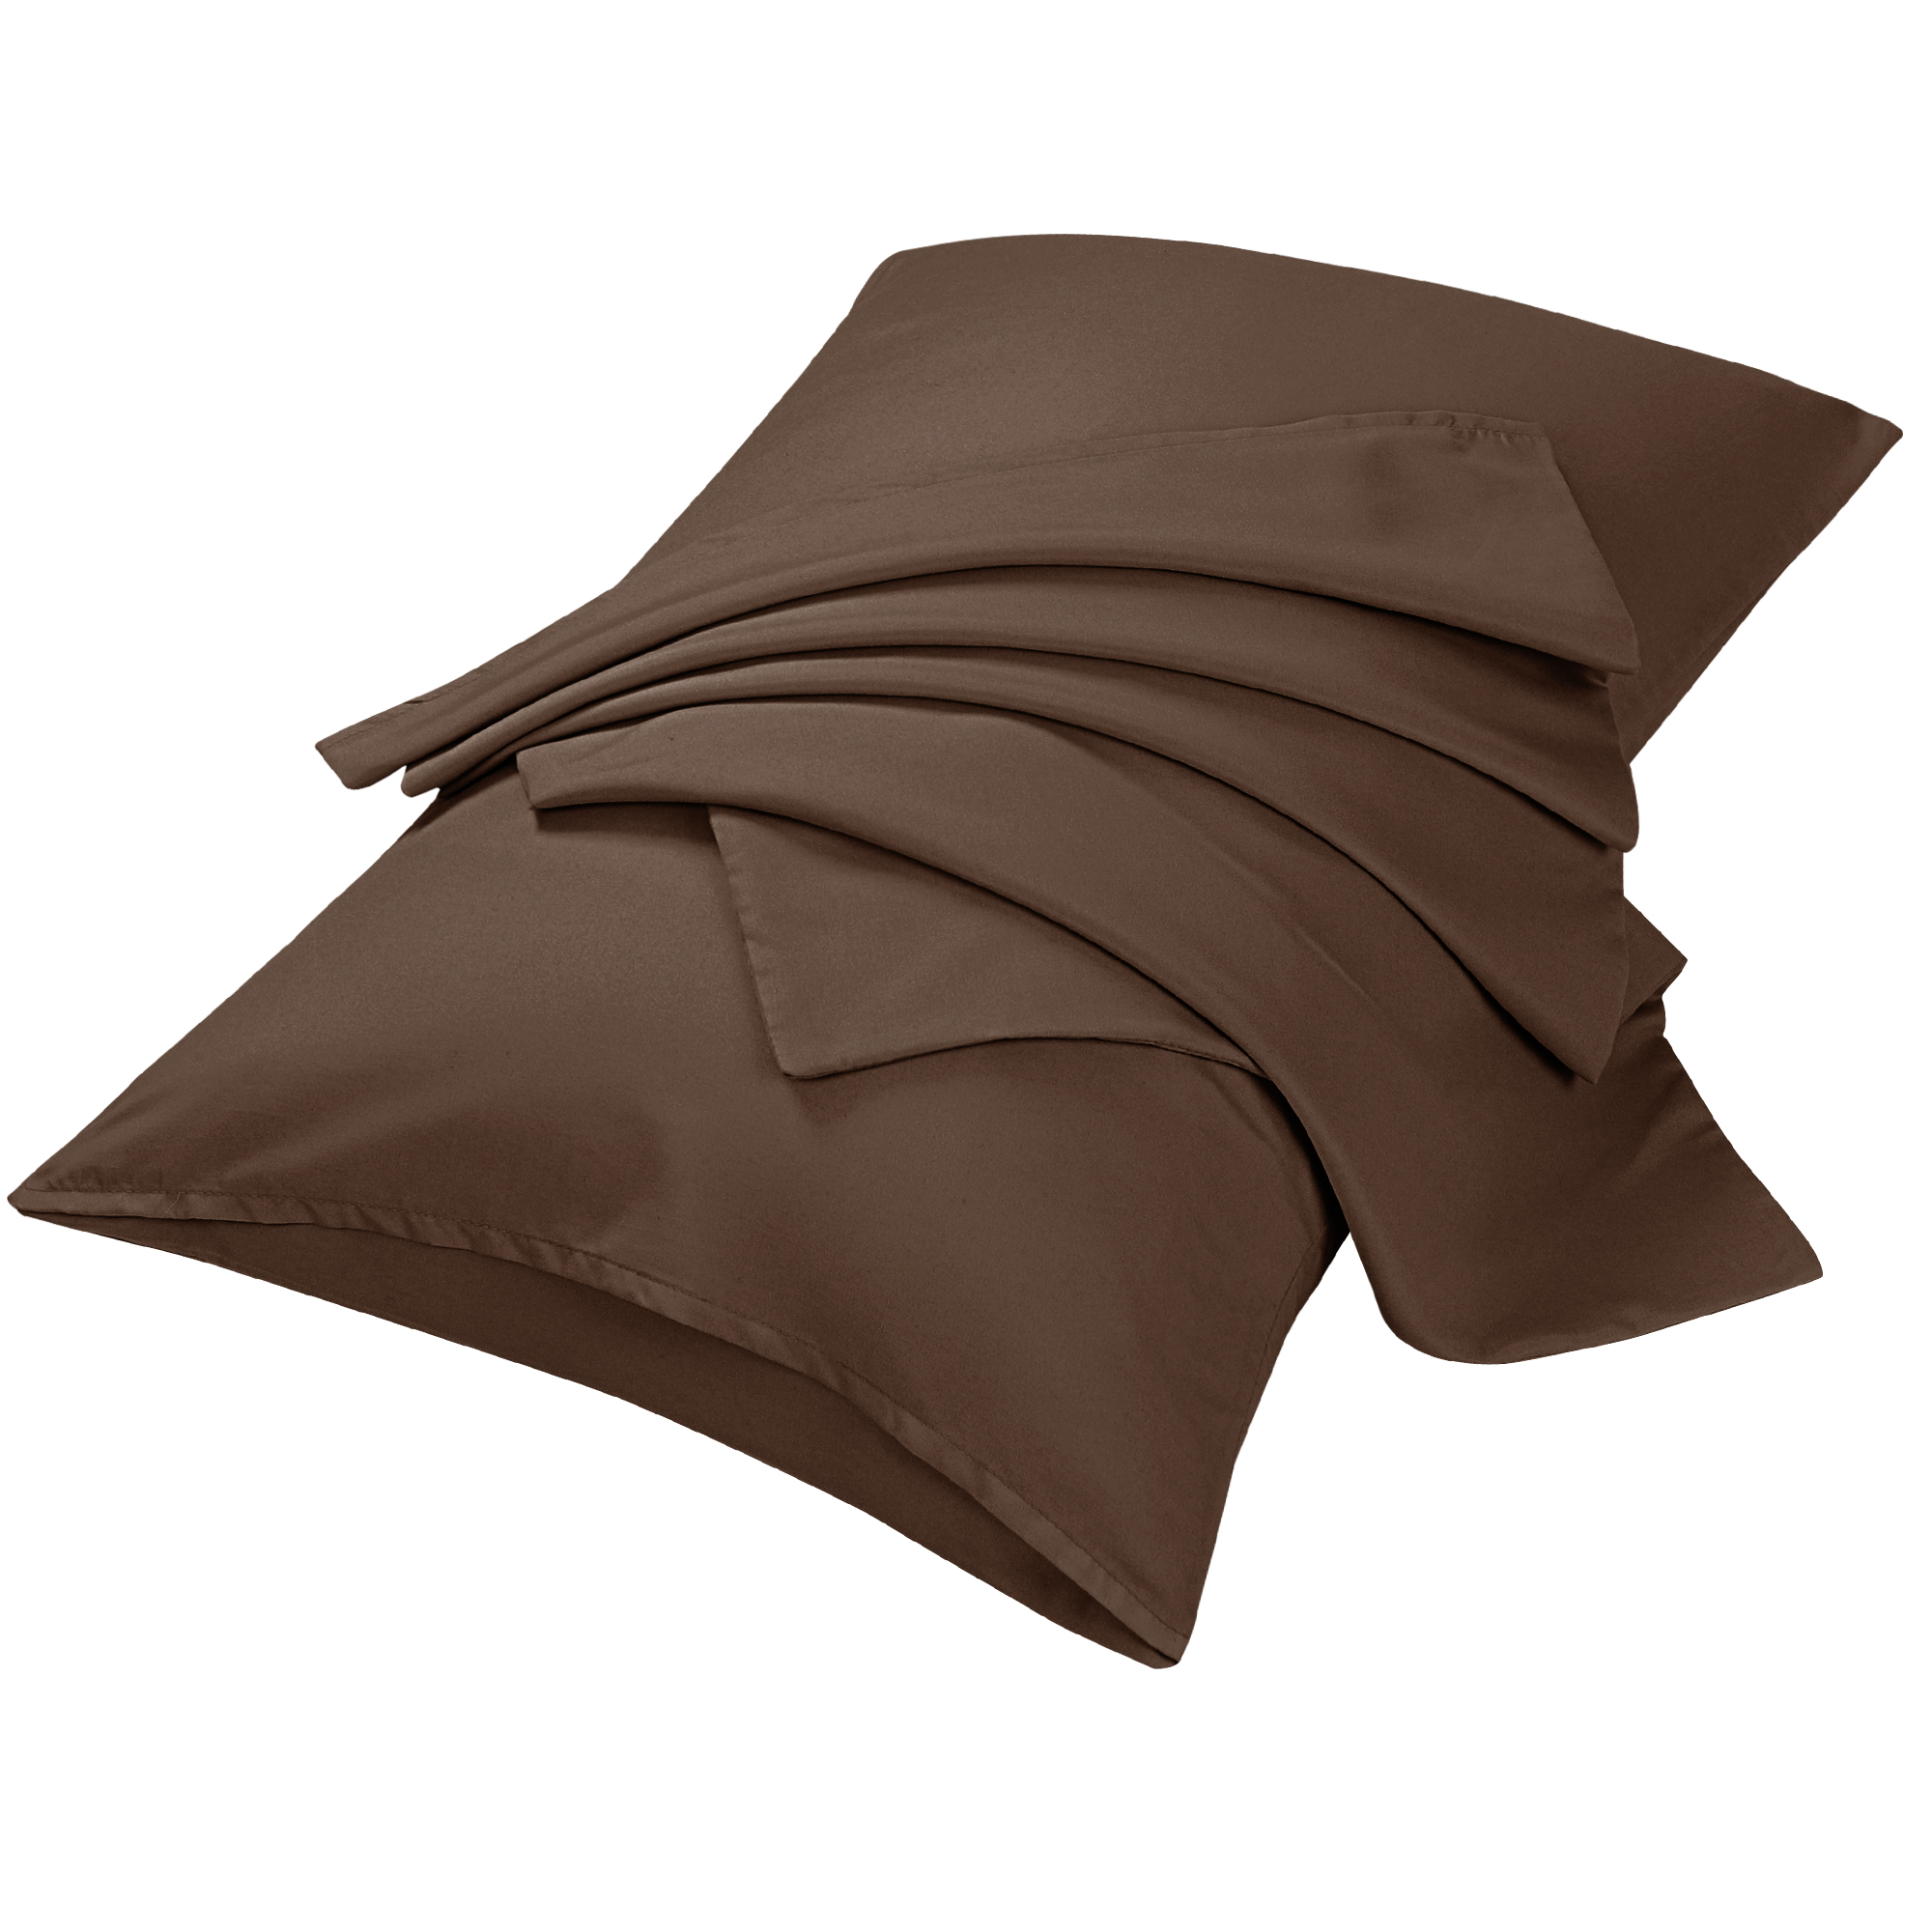 "2pcs Pillowcases Soft Microfiber, No Wrinkle, Brown Travel (14"" x 20"")"